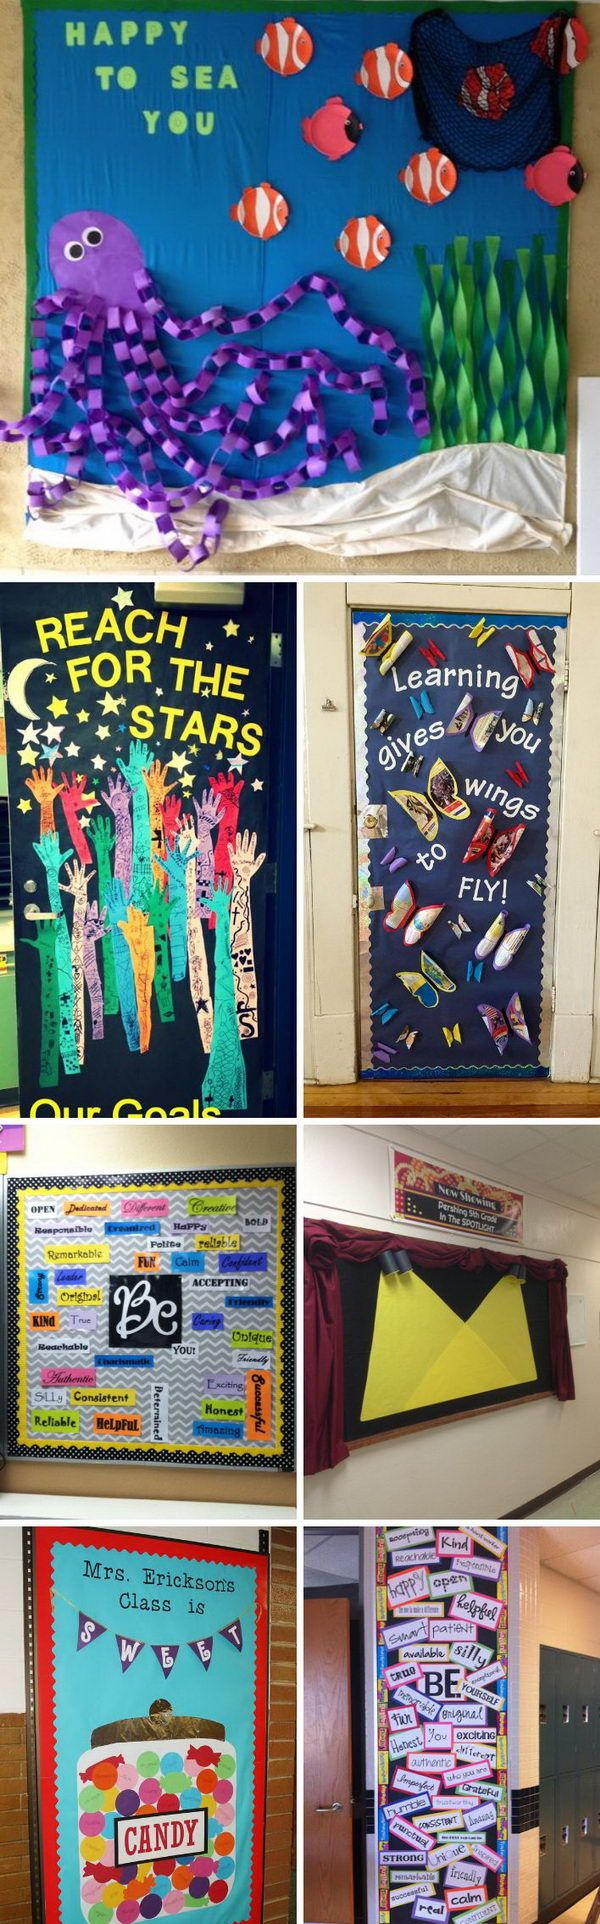 Creative Bulletin Board Ideas for Classroom Decoration.